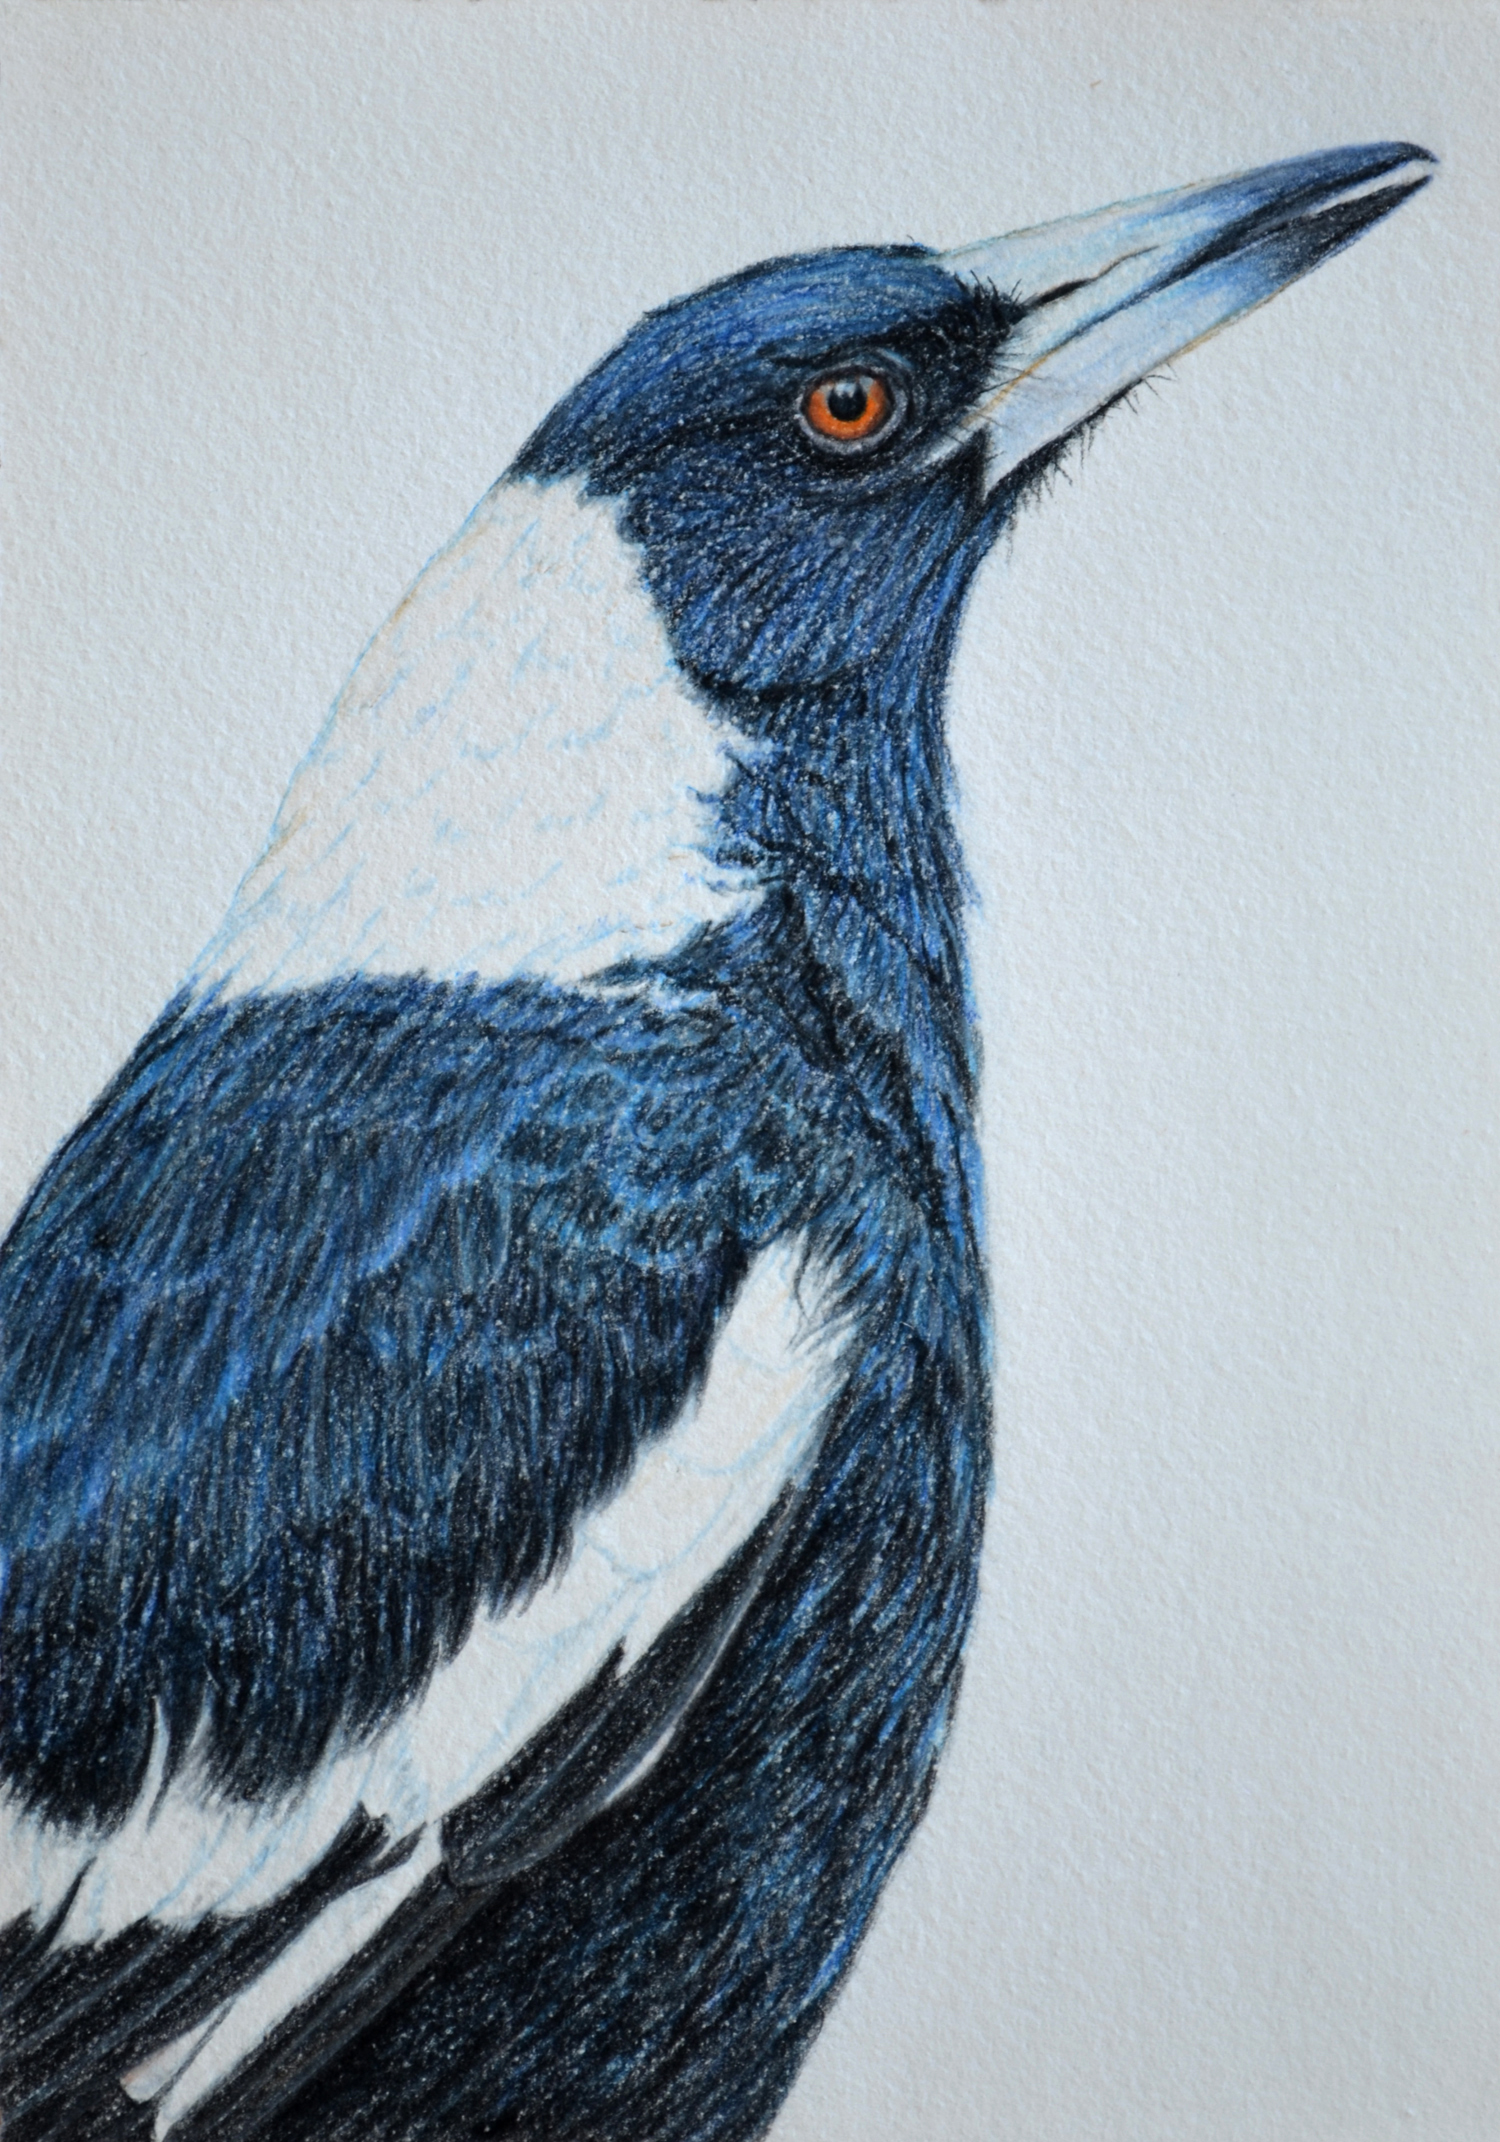 Australian Magpie  21 x 30 cm  Drawing, Carbothello pastel on handmade paper  $650 framed   click to view in Birdland series gallery 1